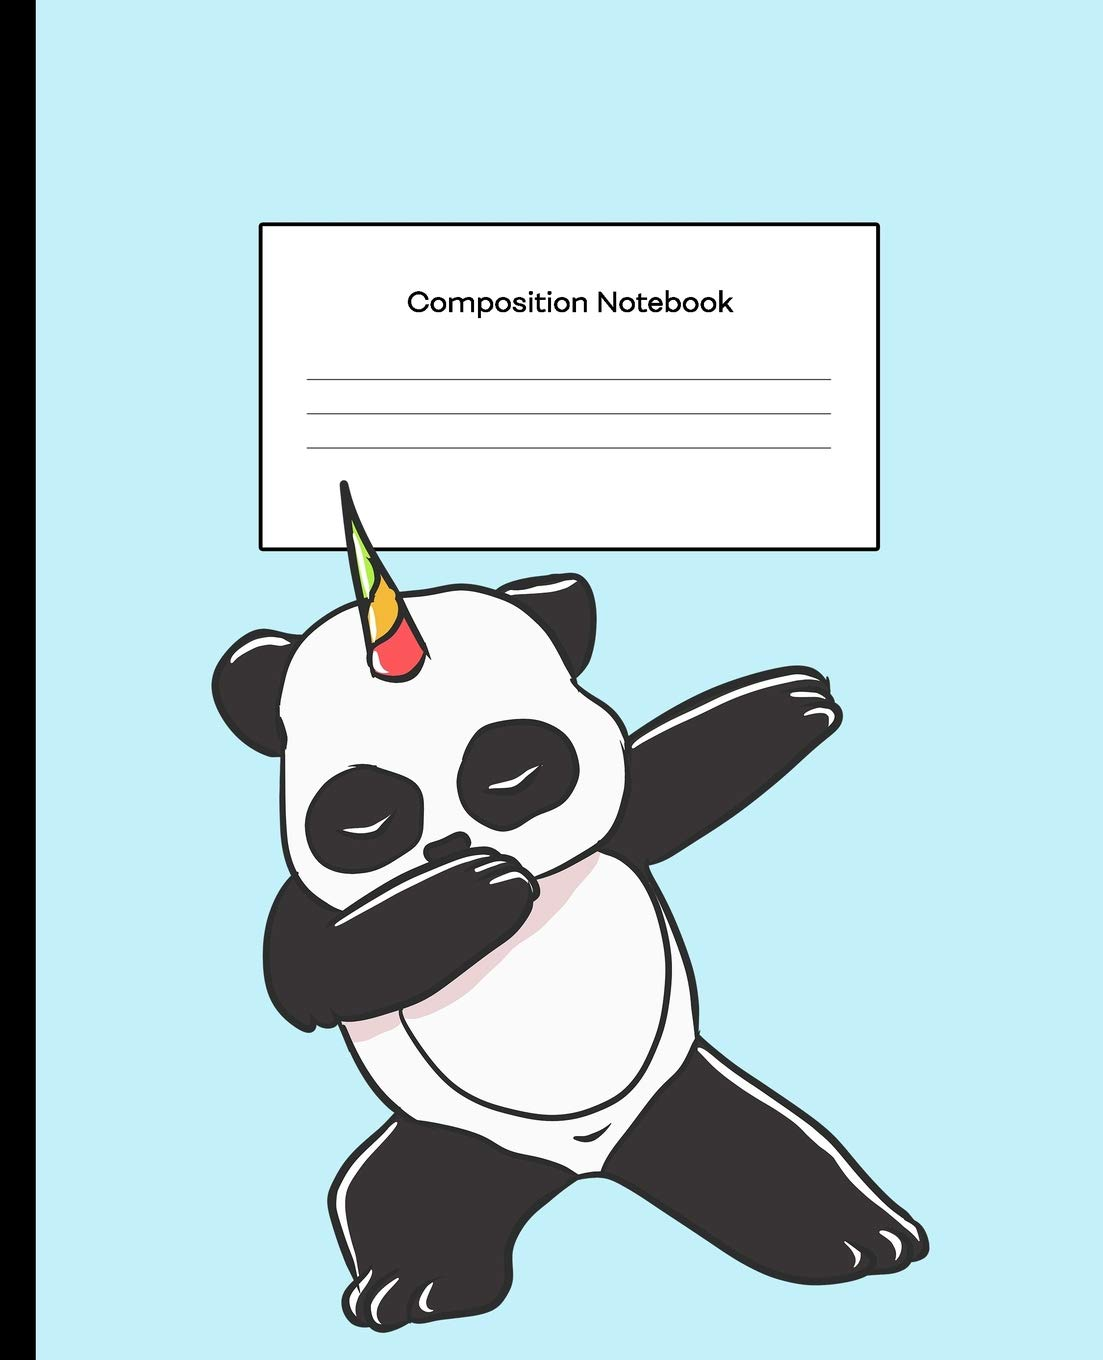 Amazoncom Composition Notebook Composition Notebook Wide Ruled 1103x1360